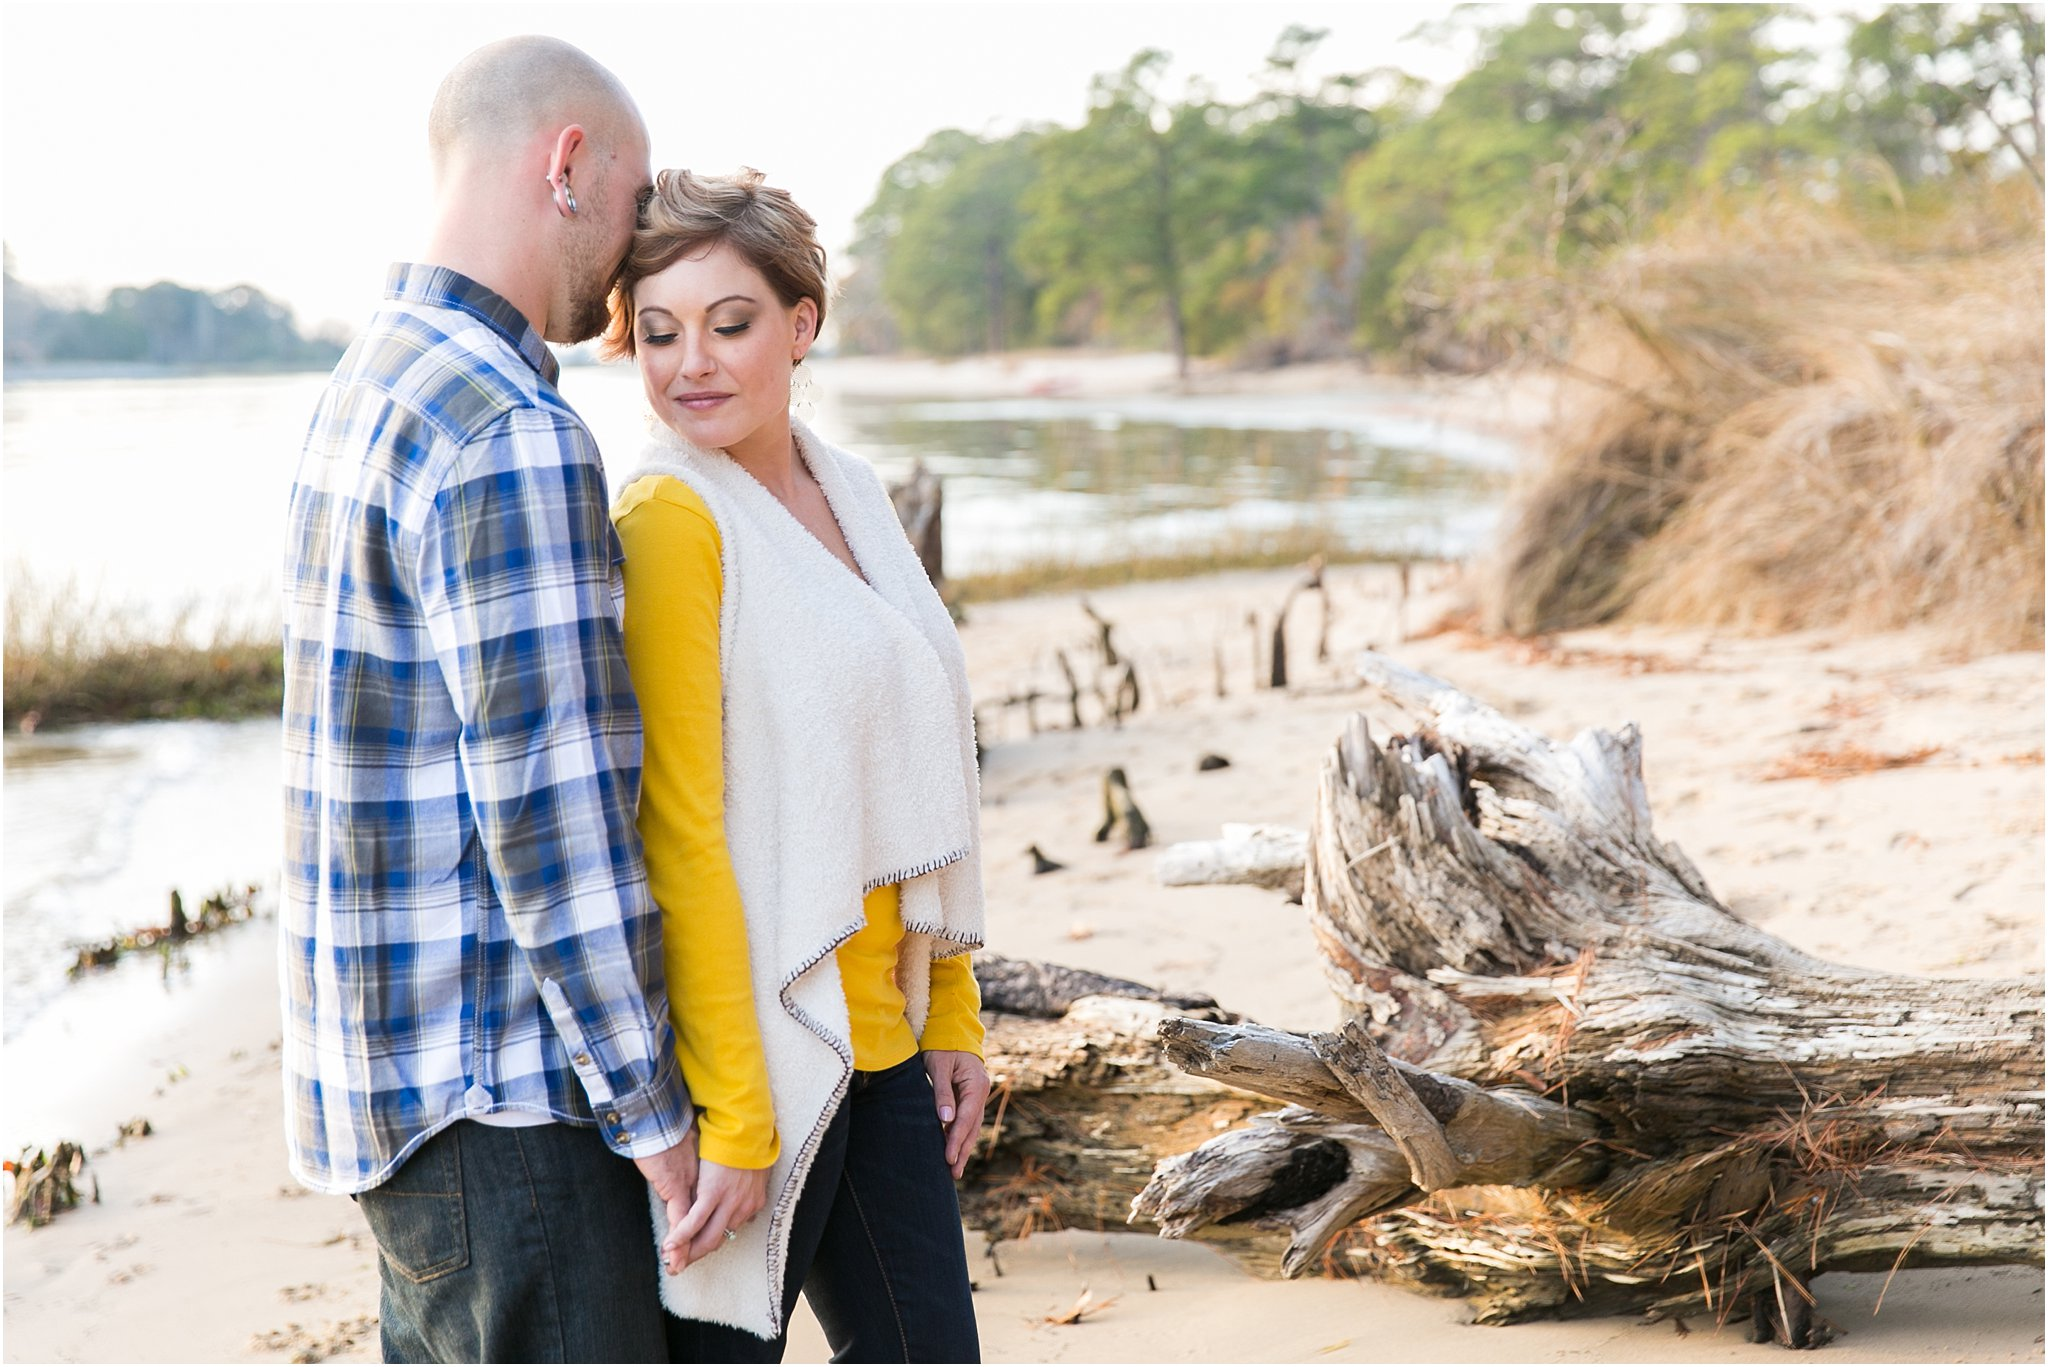 jessica_ryan_photography_virginia_beach_virginia_engagements_engagement_photographer_candid_1061